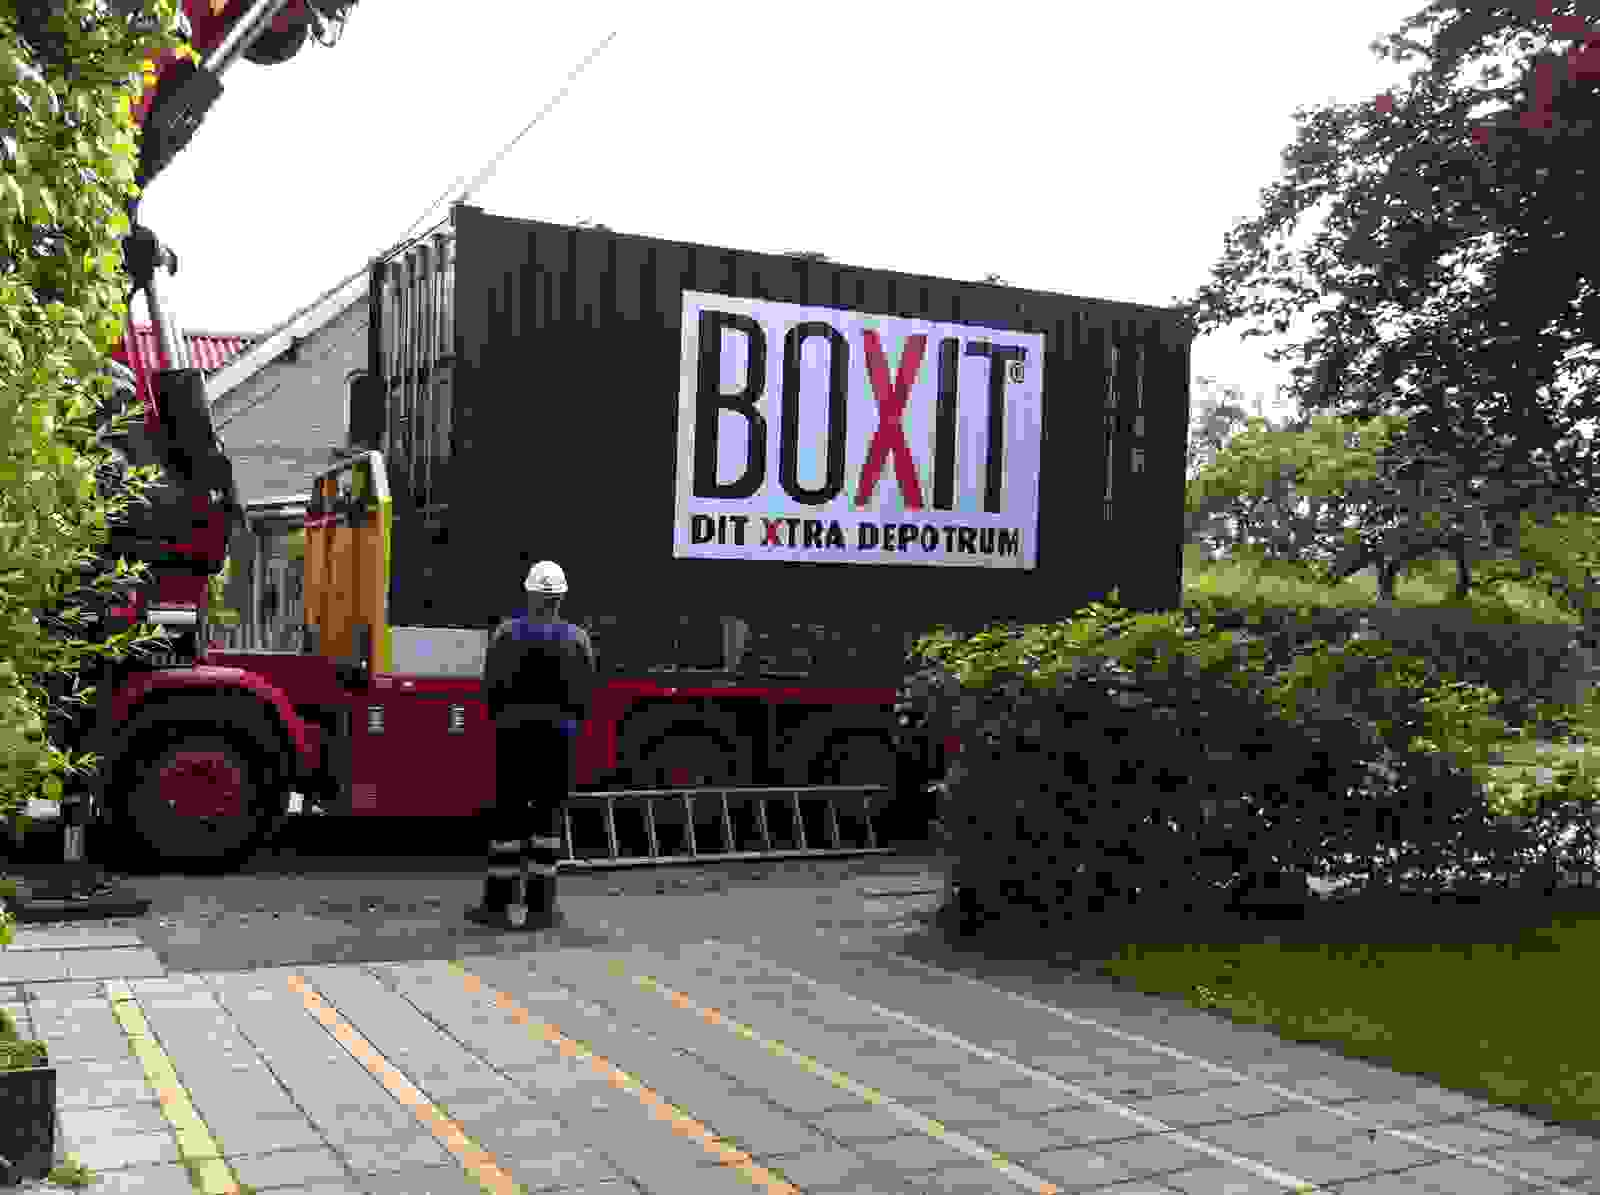 Levering af container hos private